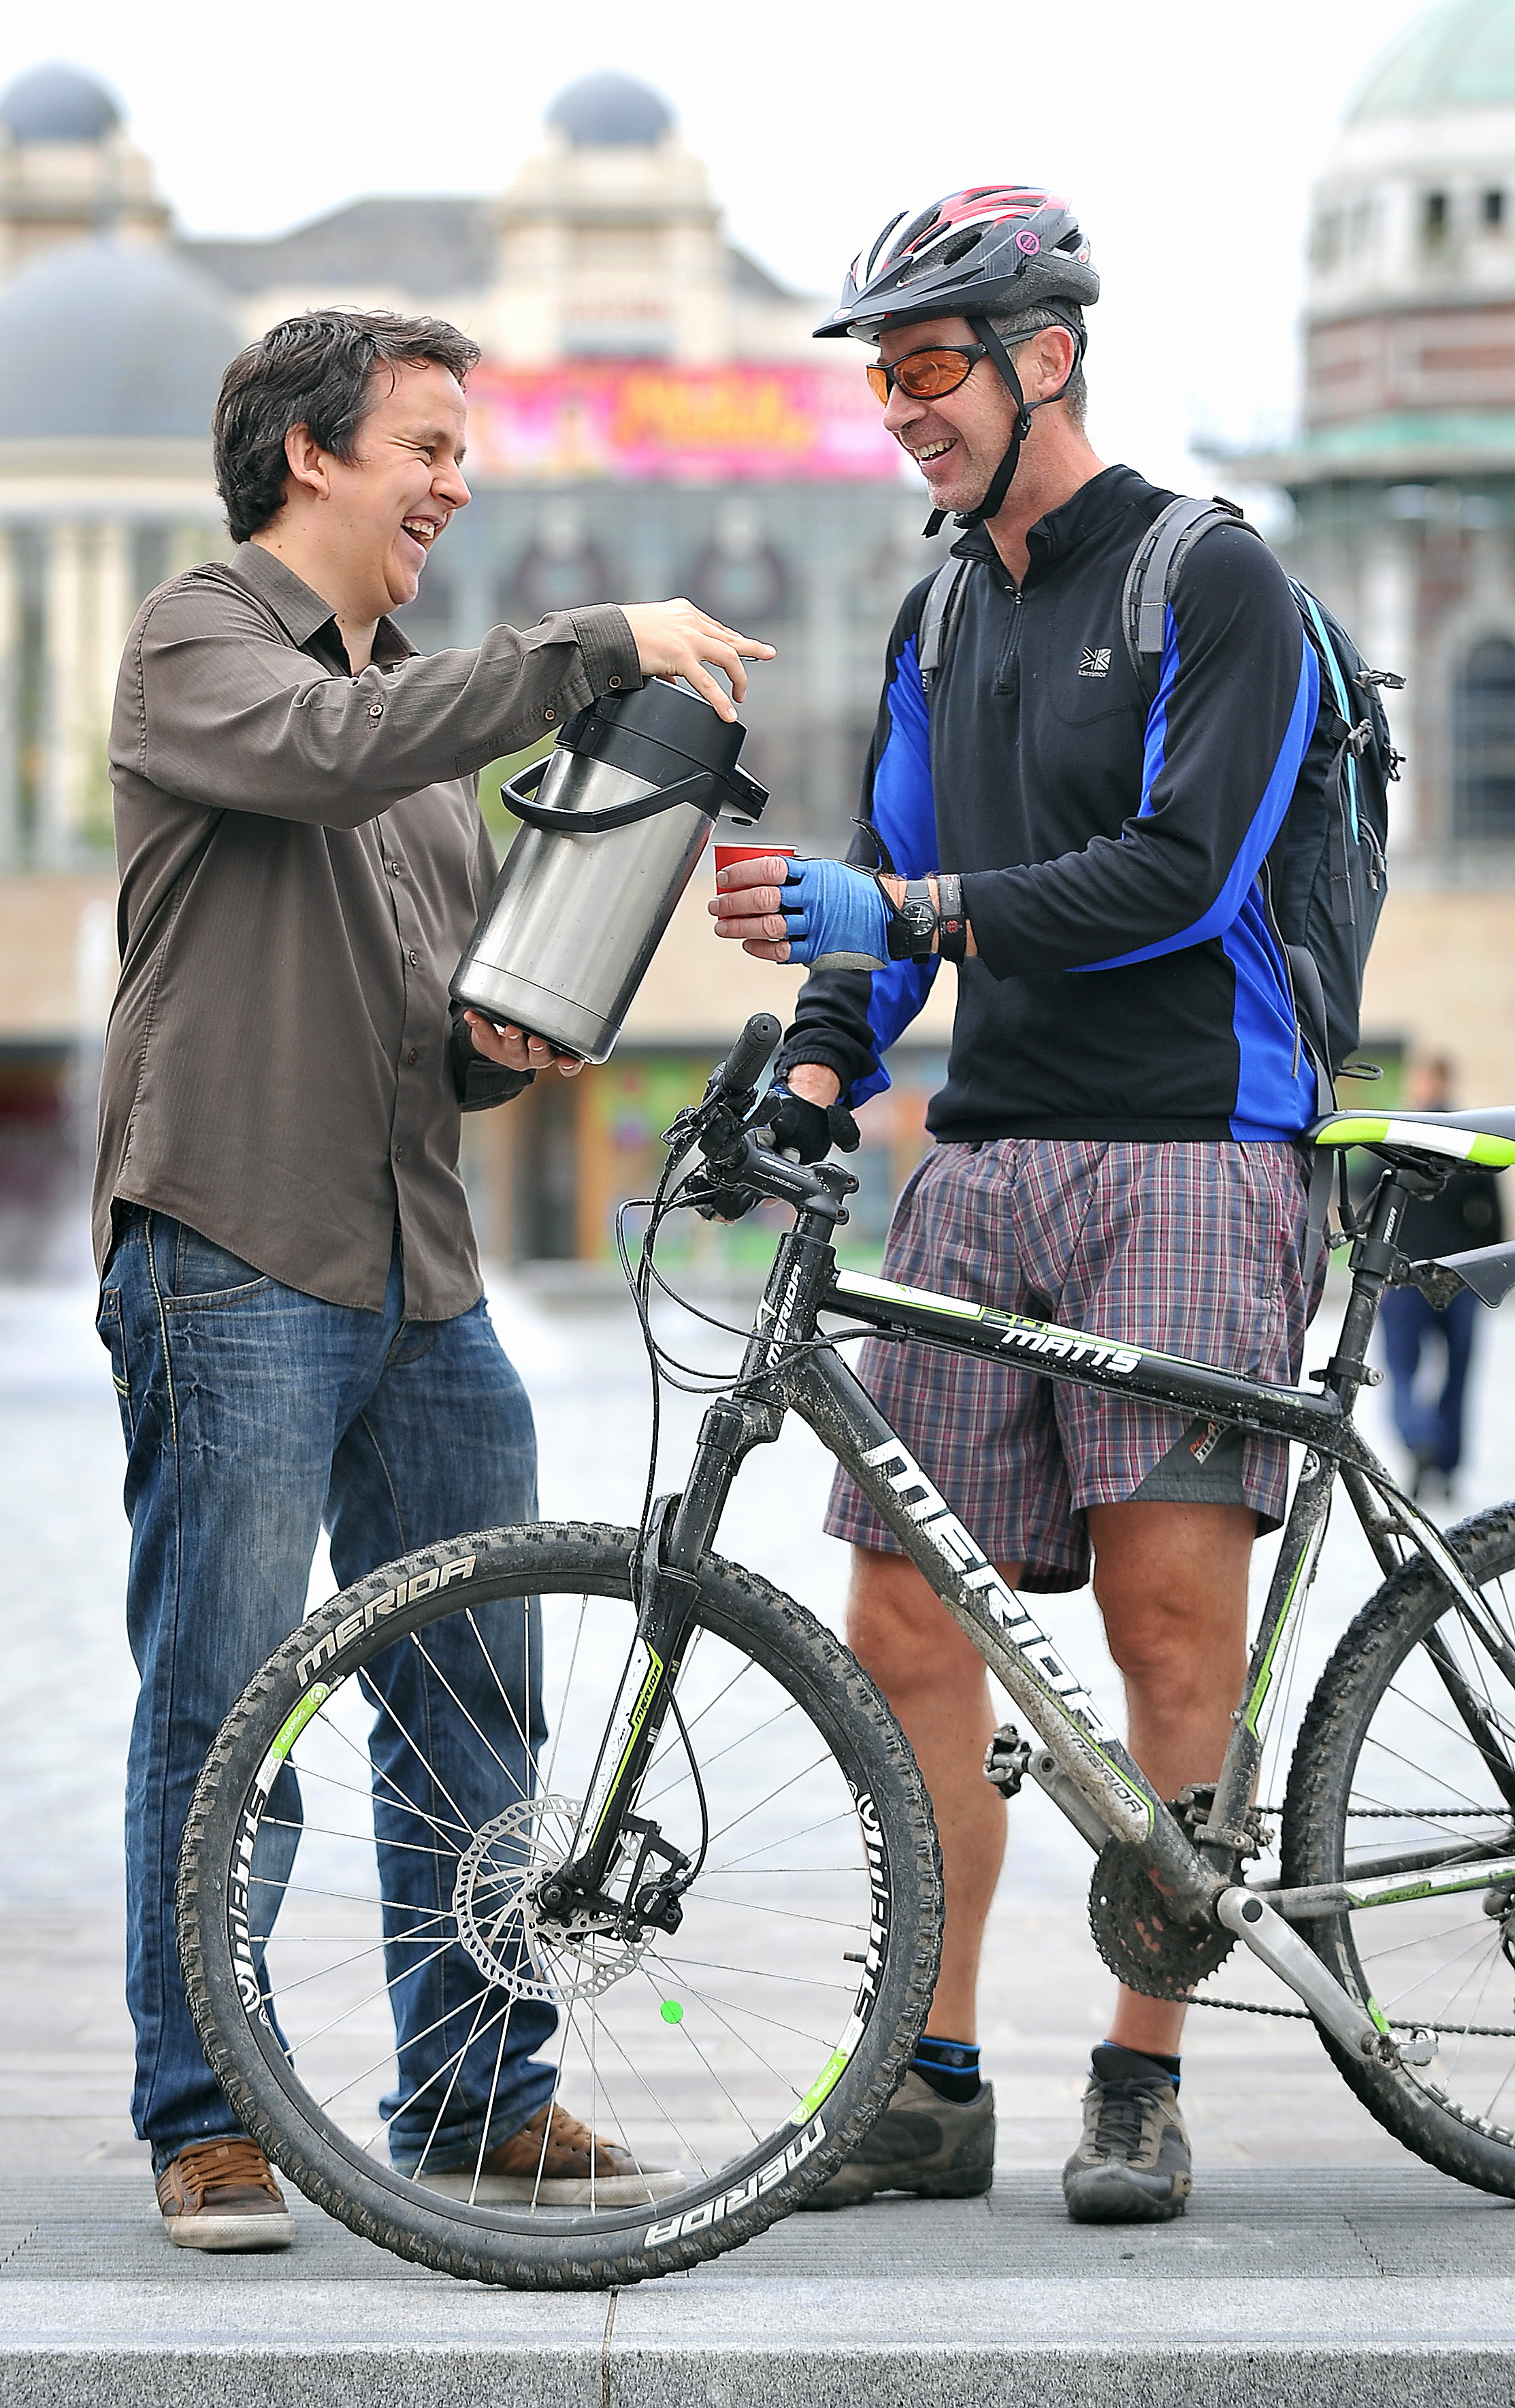 Tom Jones from Bradford Council pours cyclist, Ian Taylor, a coffee in City Park for the free Bike Breakfast to celebrate National Cycle to Work Day on September 12 last year